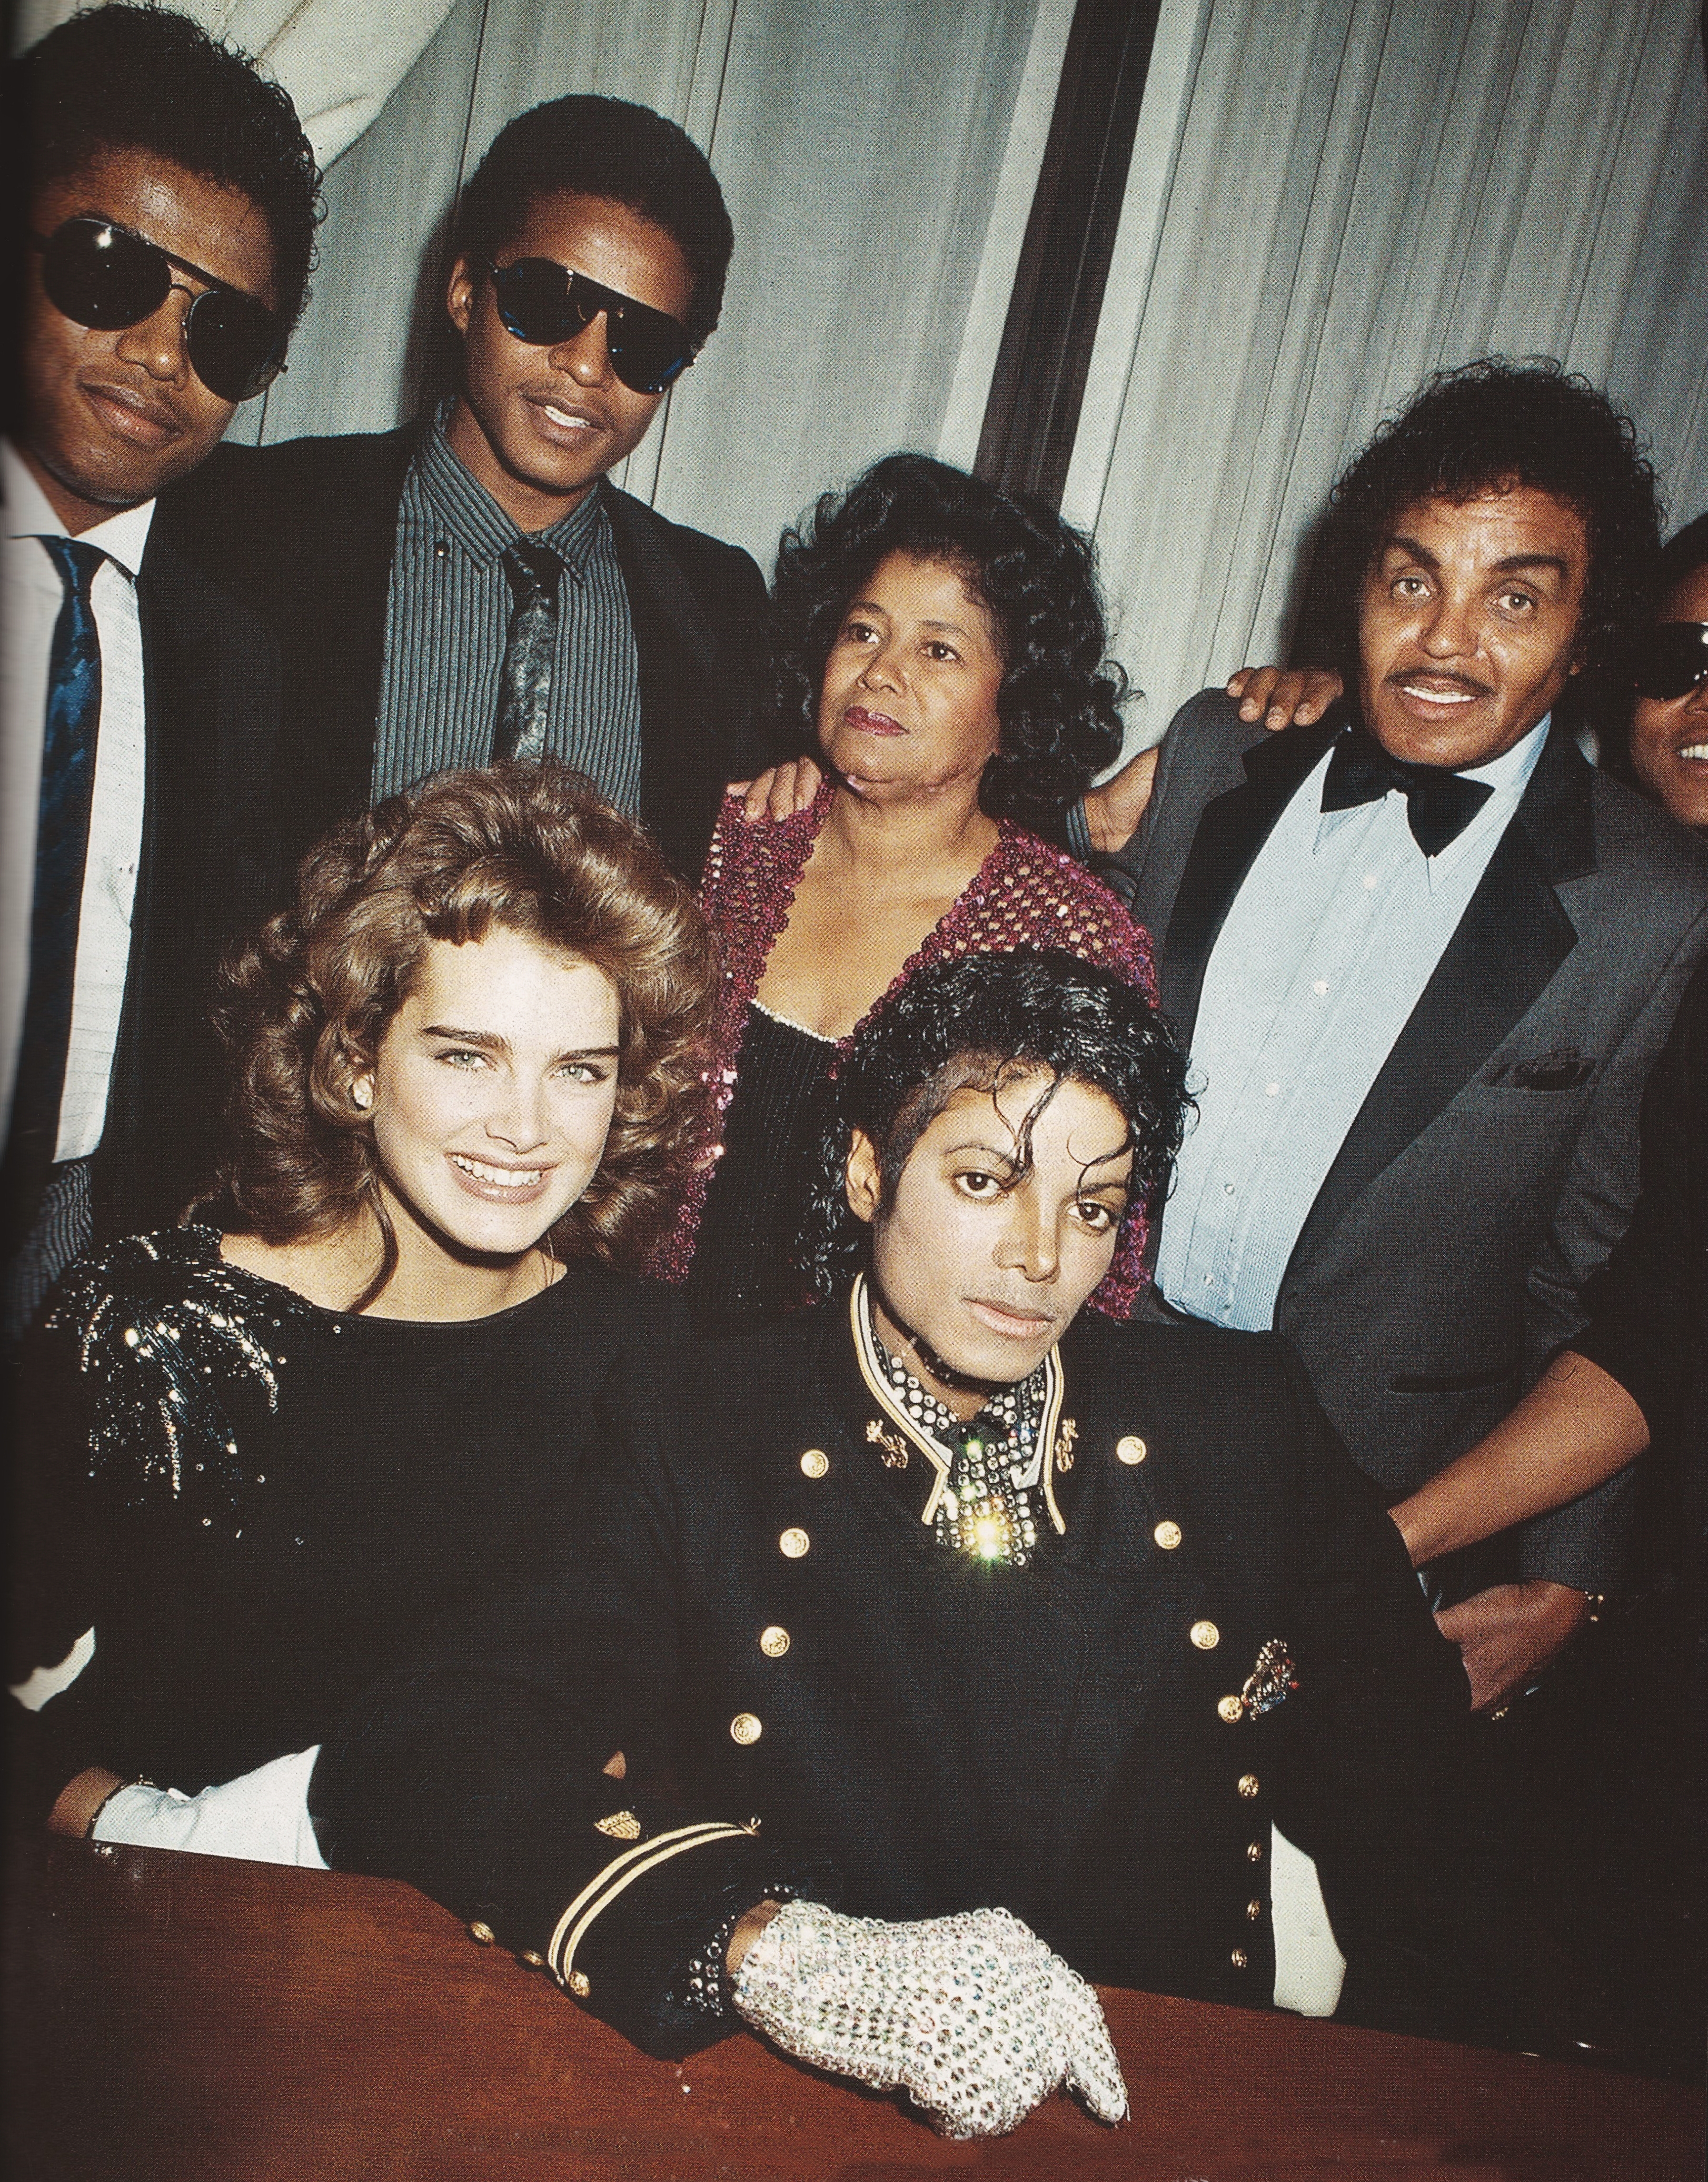 Michael Jackson - HQ Scan - Michael receives award from CBS and the Gines Book Of World Records